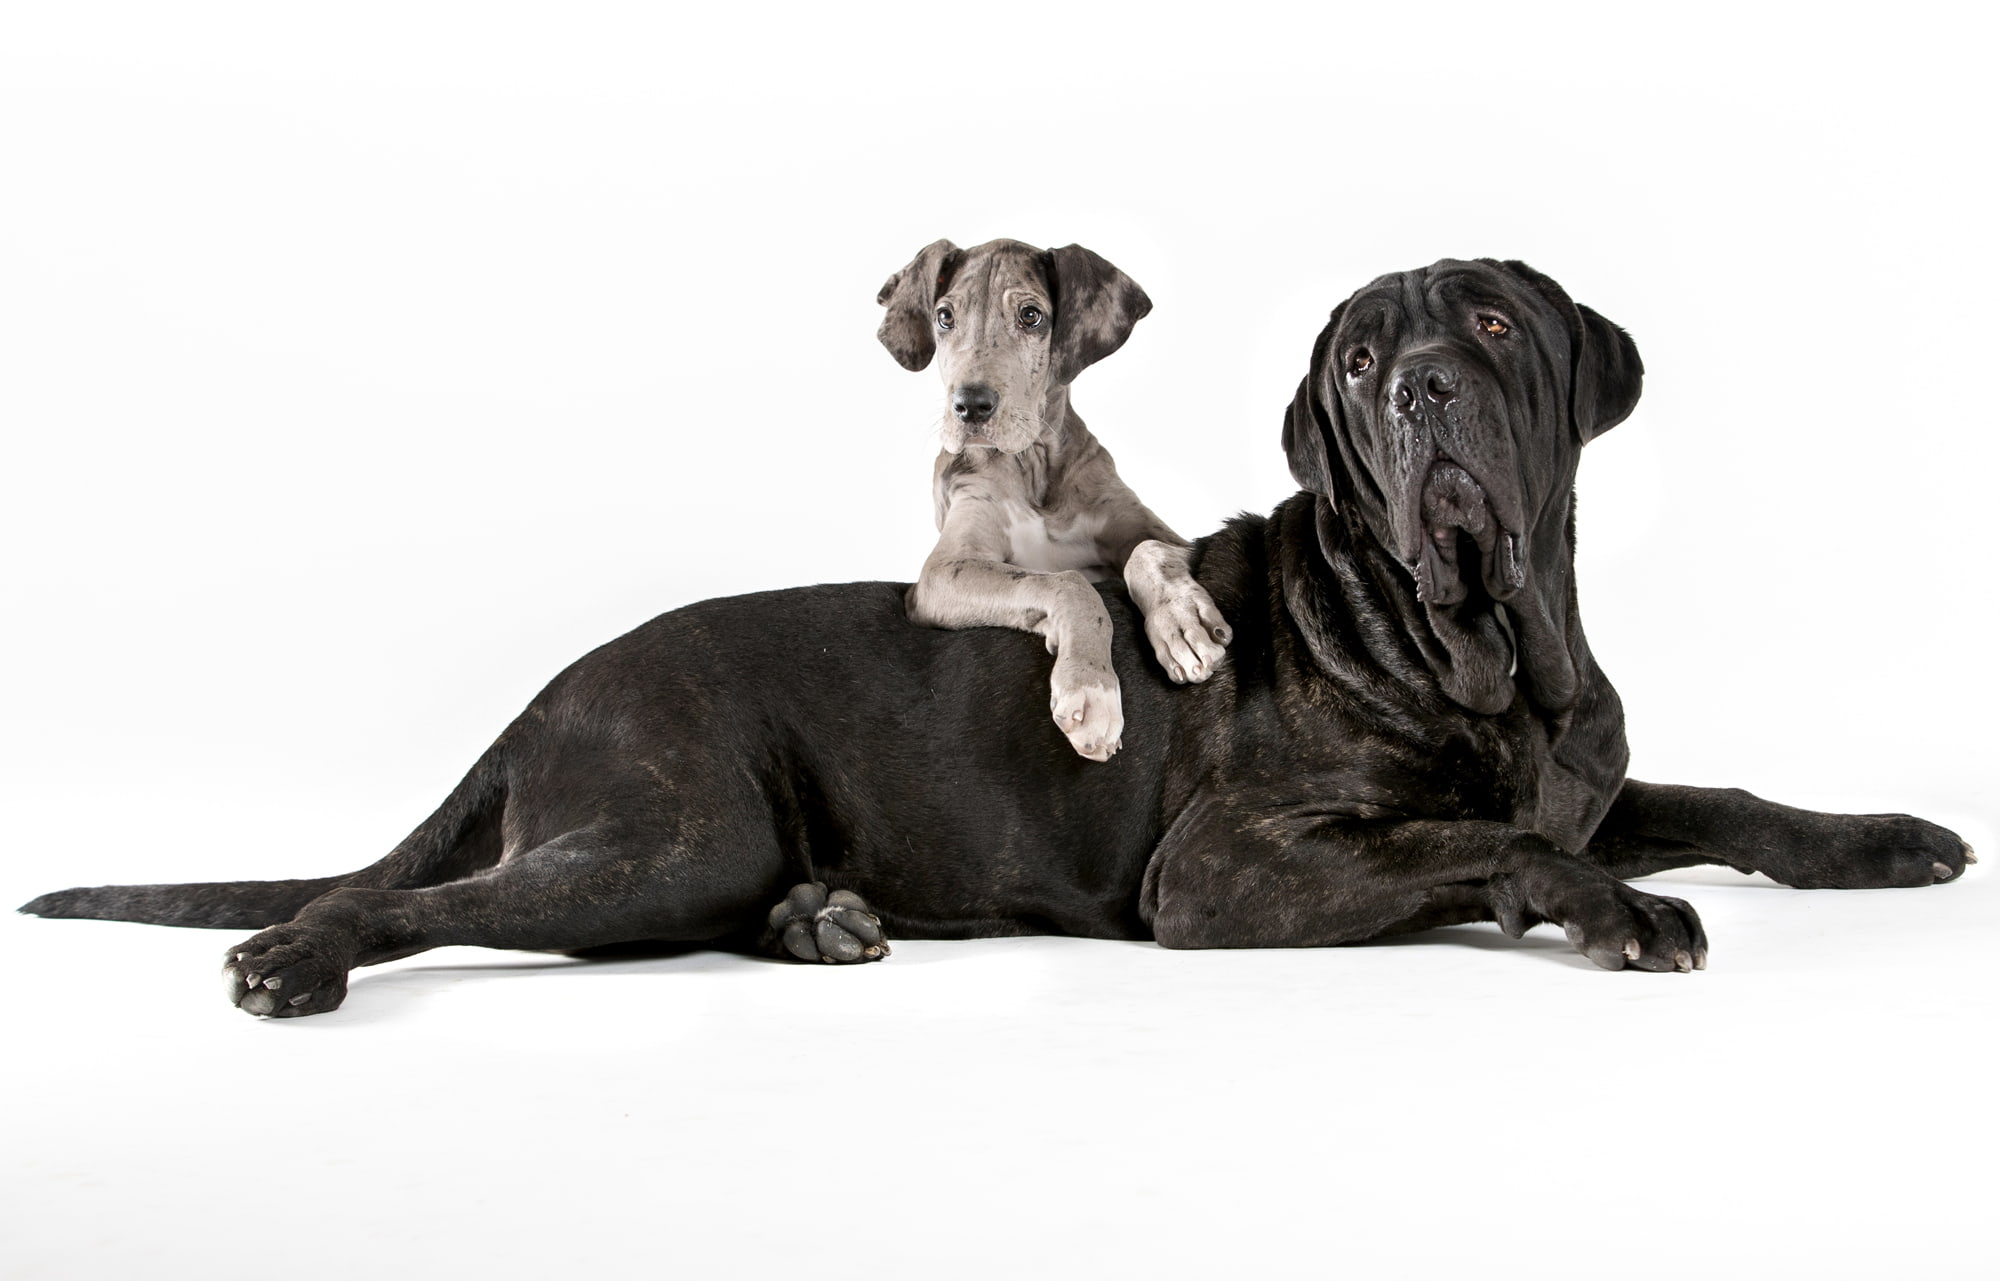 black dog and grey puppy on white background